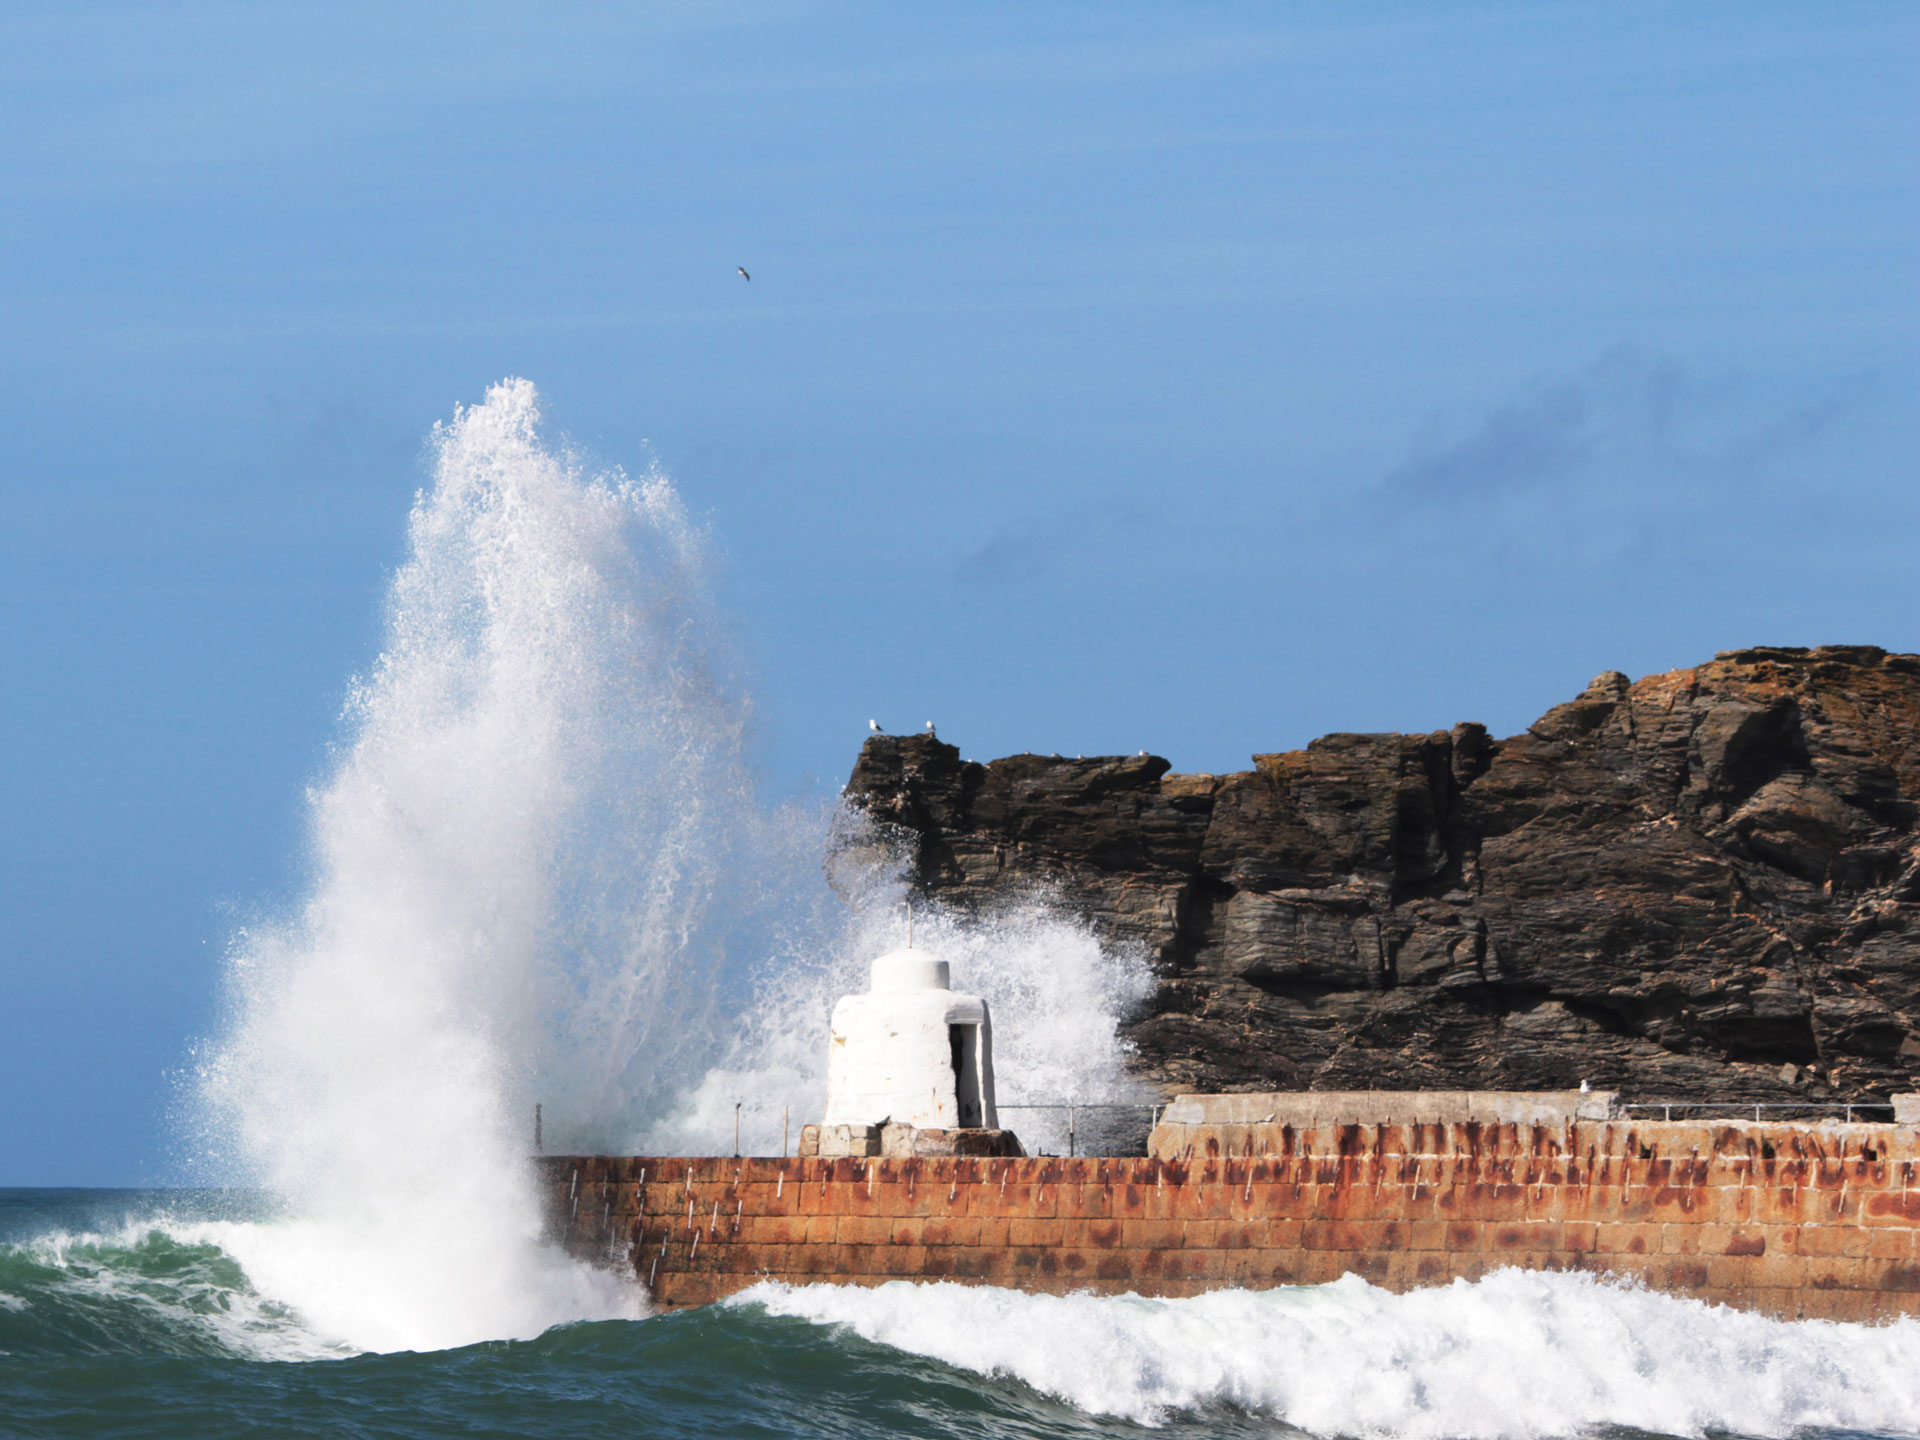 Waves crashing over the Monkey Hut on Portreath Harbour Arm